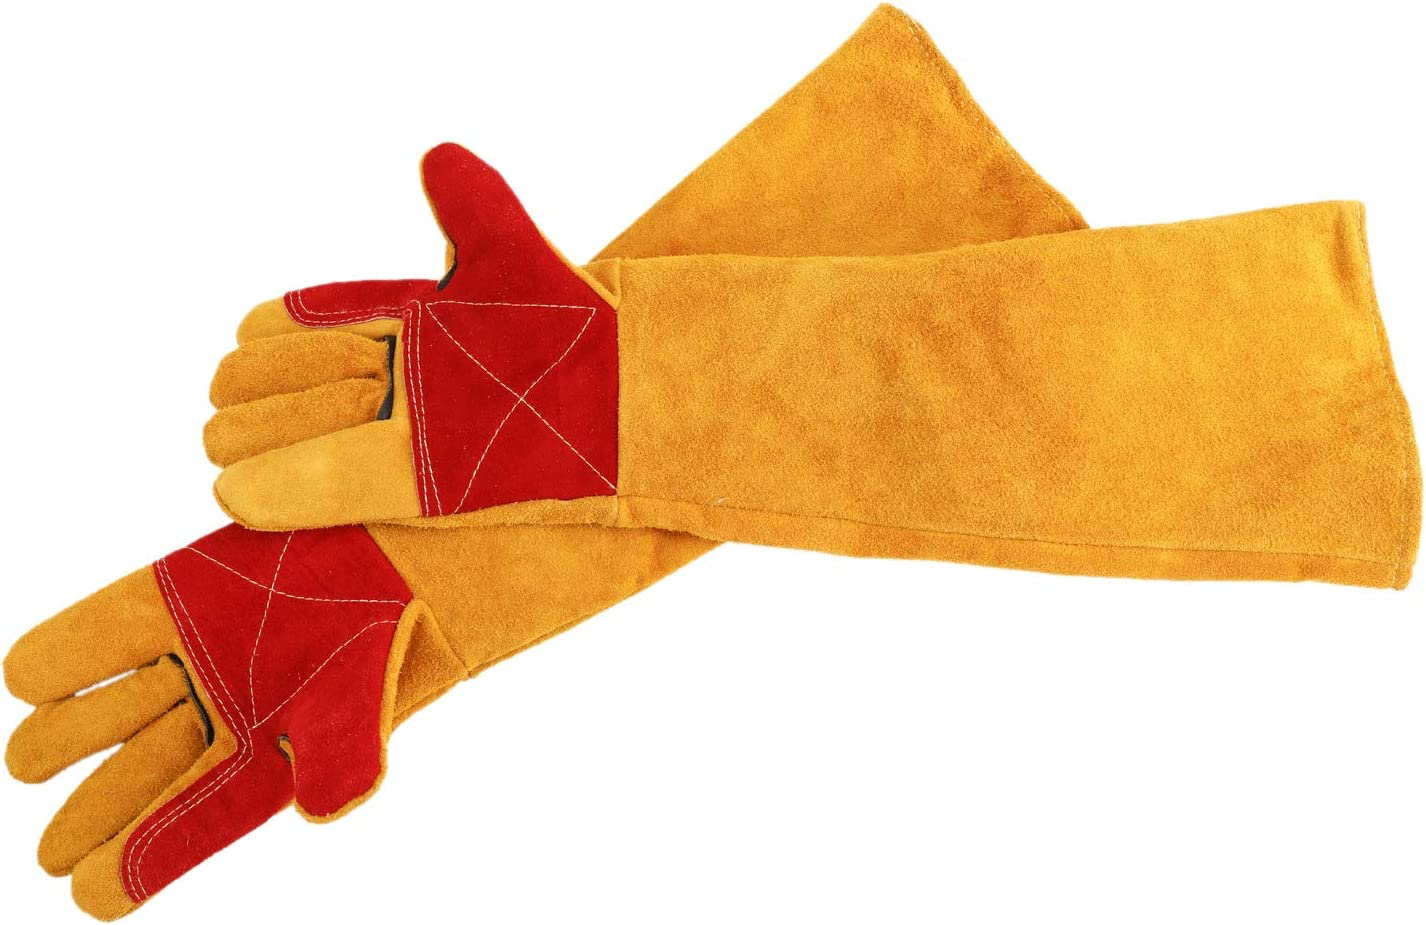 23.6 Long Sleeves Leather Forge Welding Safety Gloves Flannelette Lined Welders Gauntlets Wood Burners Accessories Gloves Heat//Fire Resistant Stove//Fire//Pot Holder//Tig Welder and Barbecue Gloves